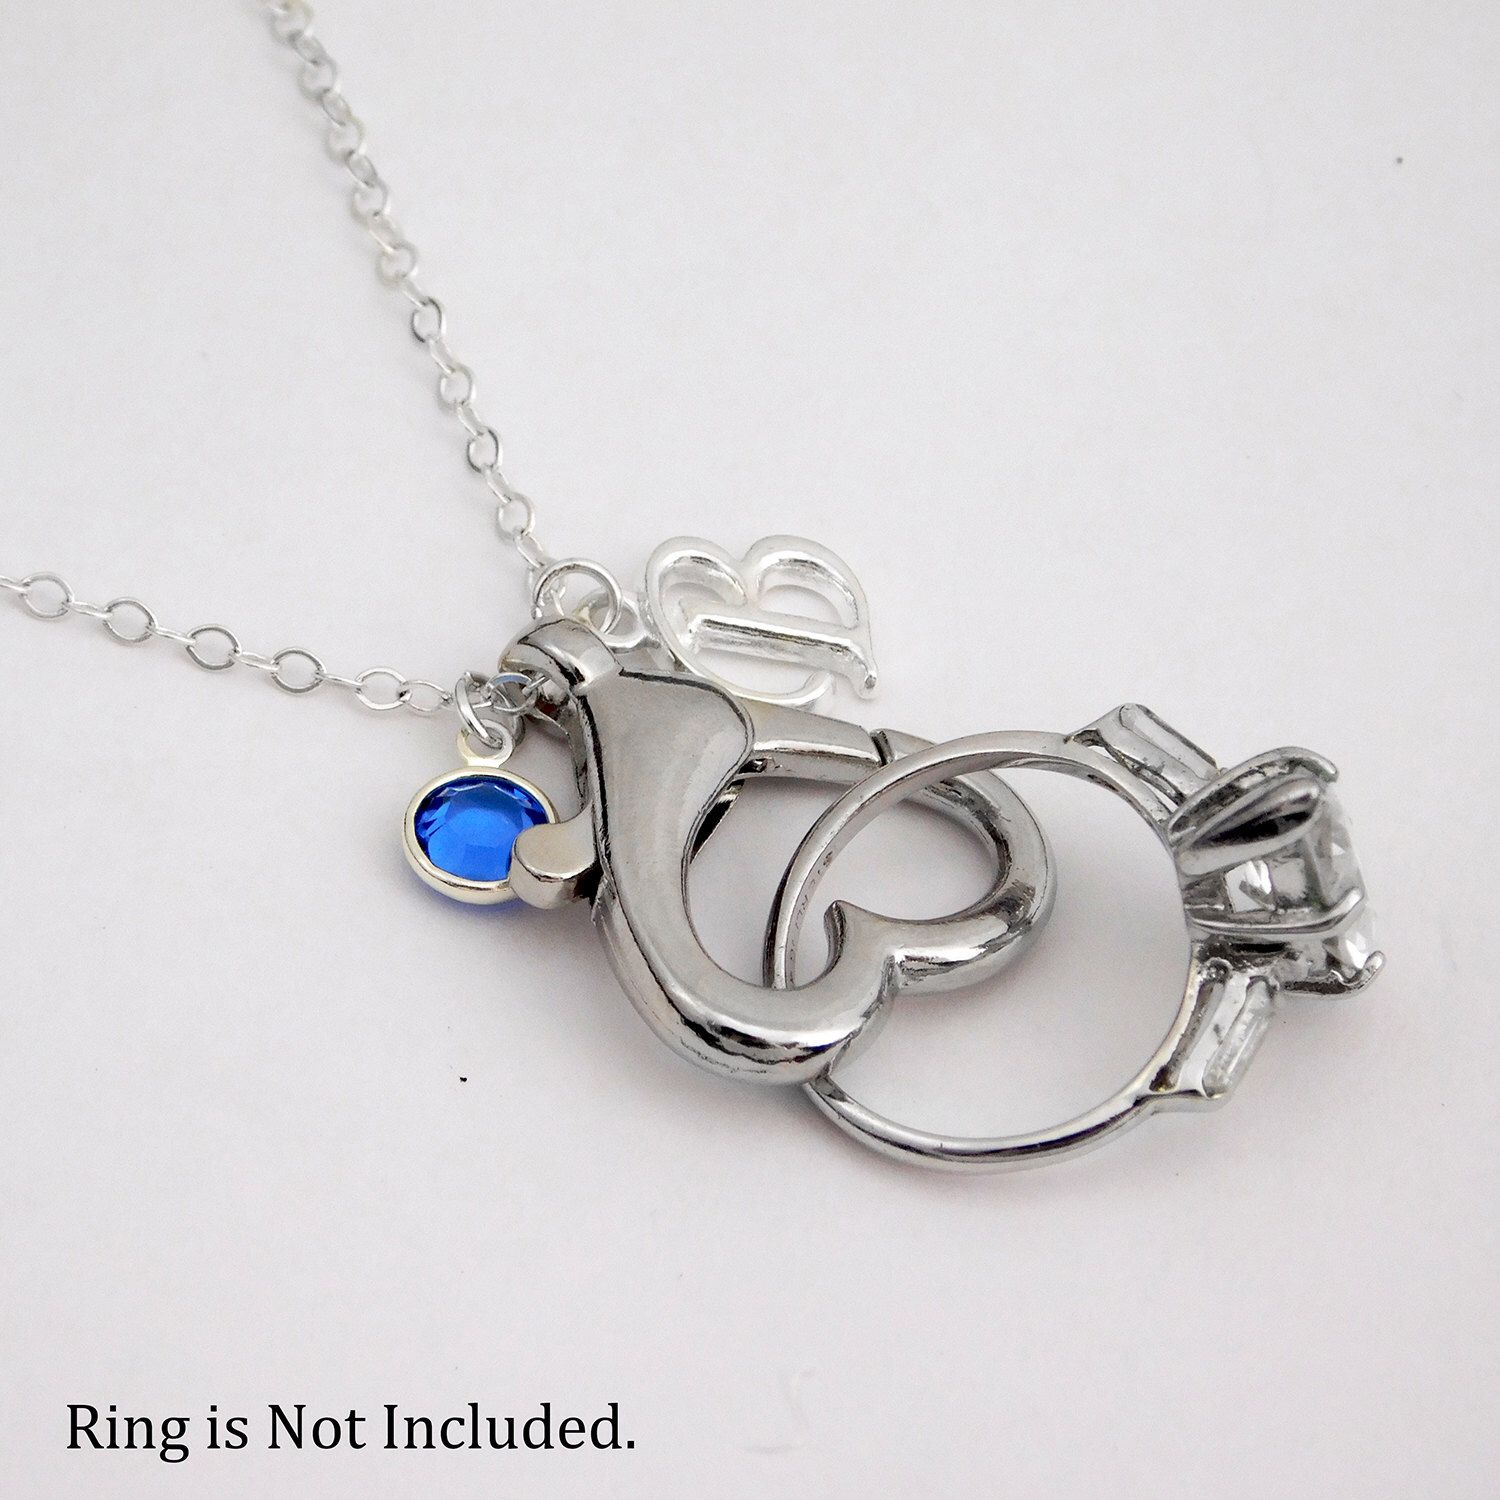 Wedding Ring Holder Necklace with Initial Charm and